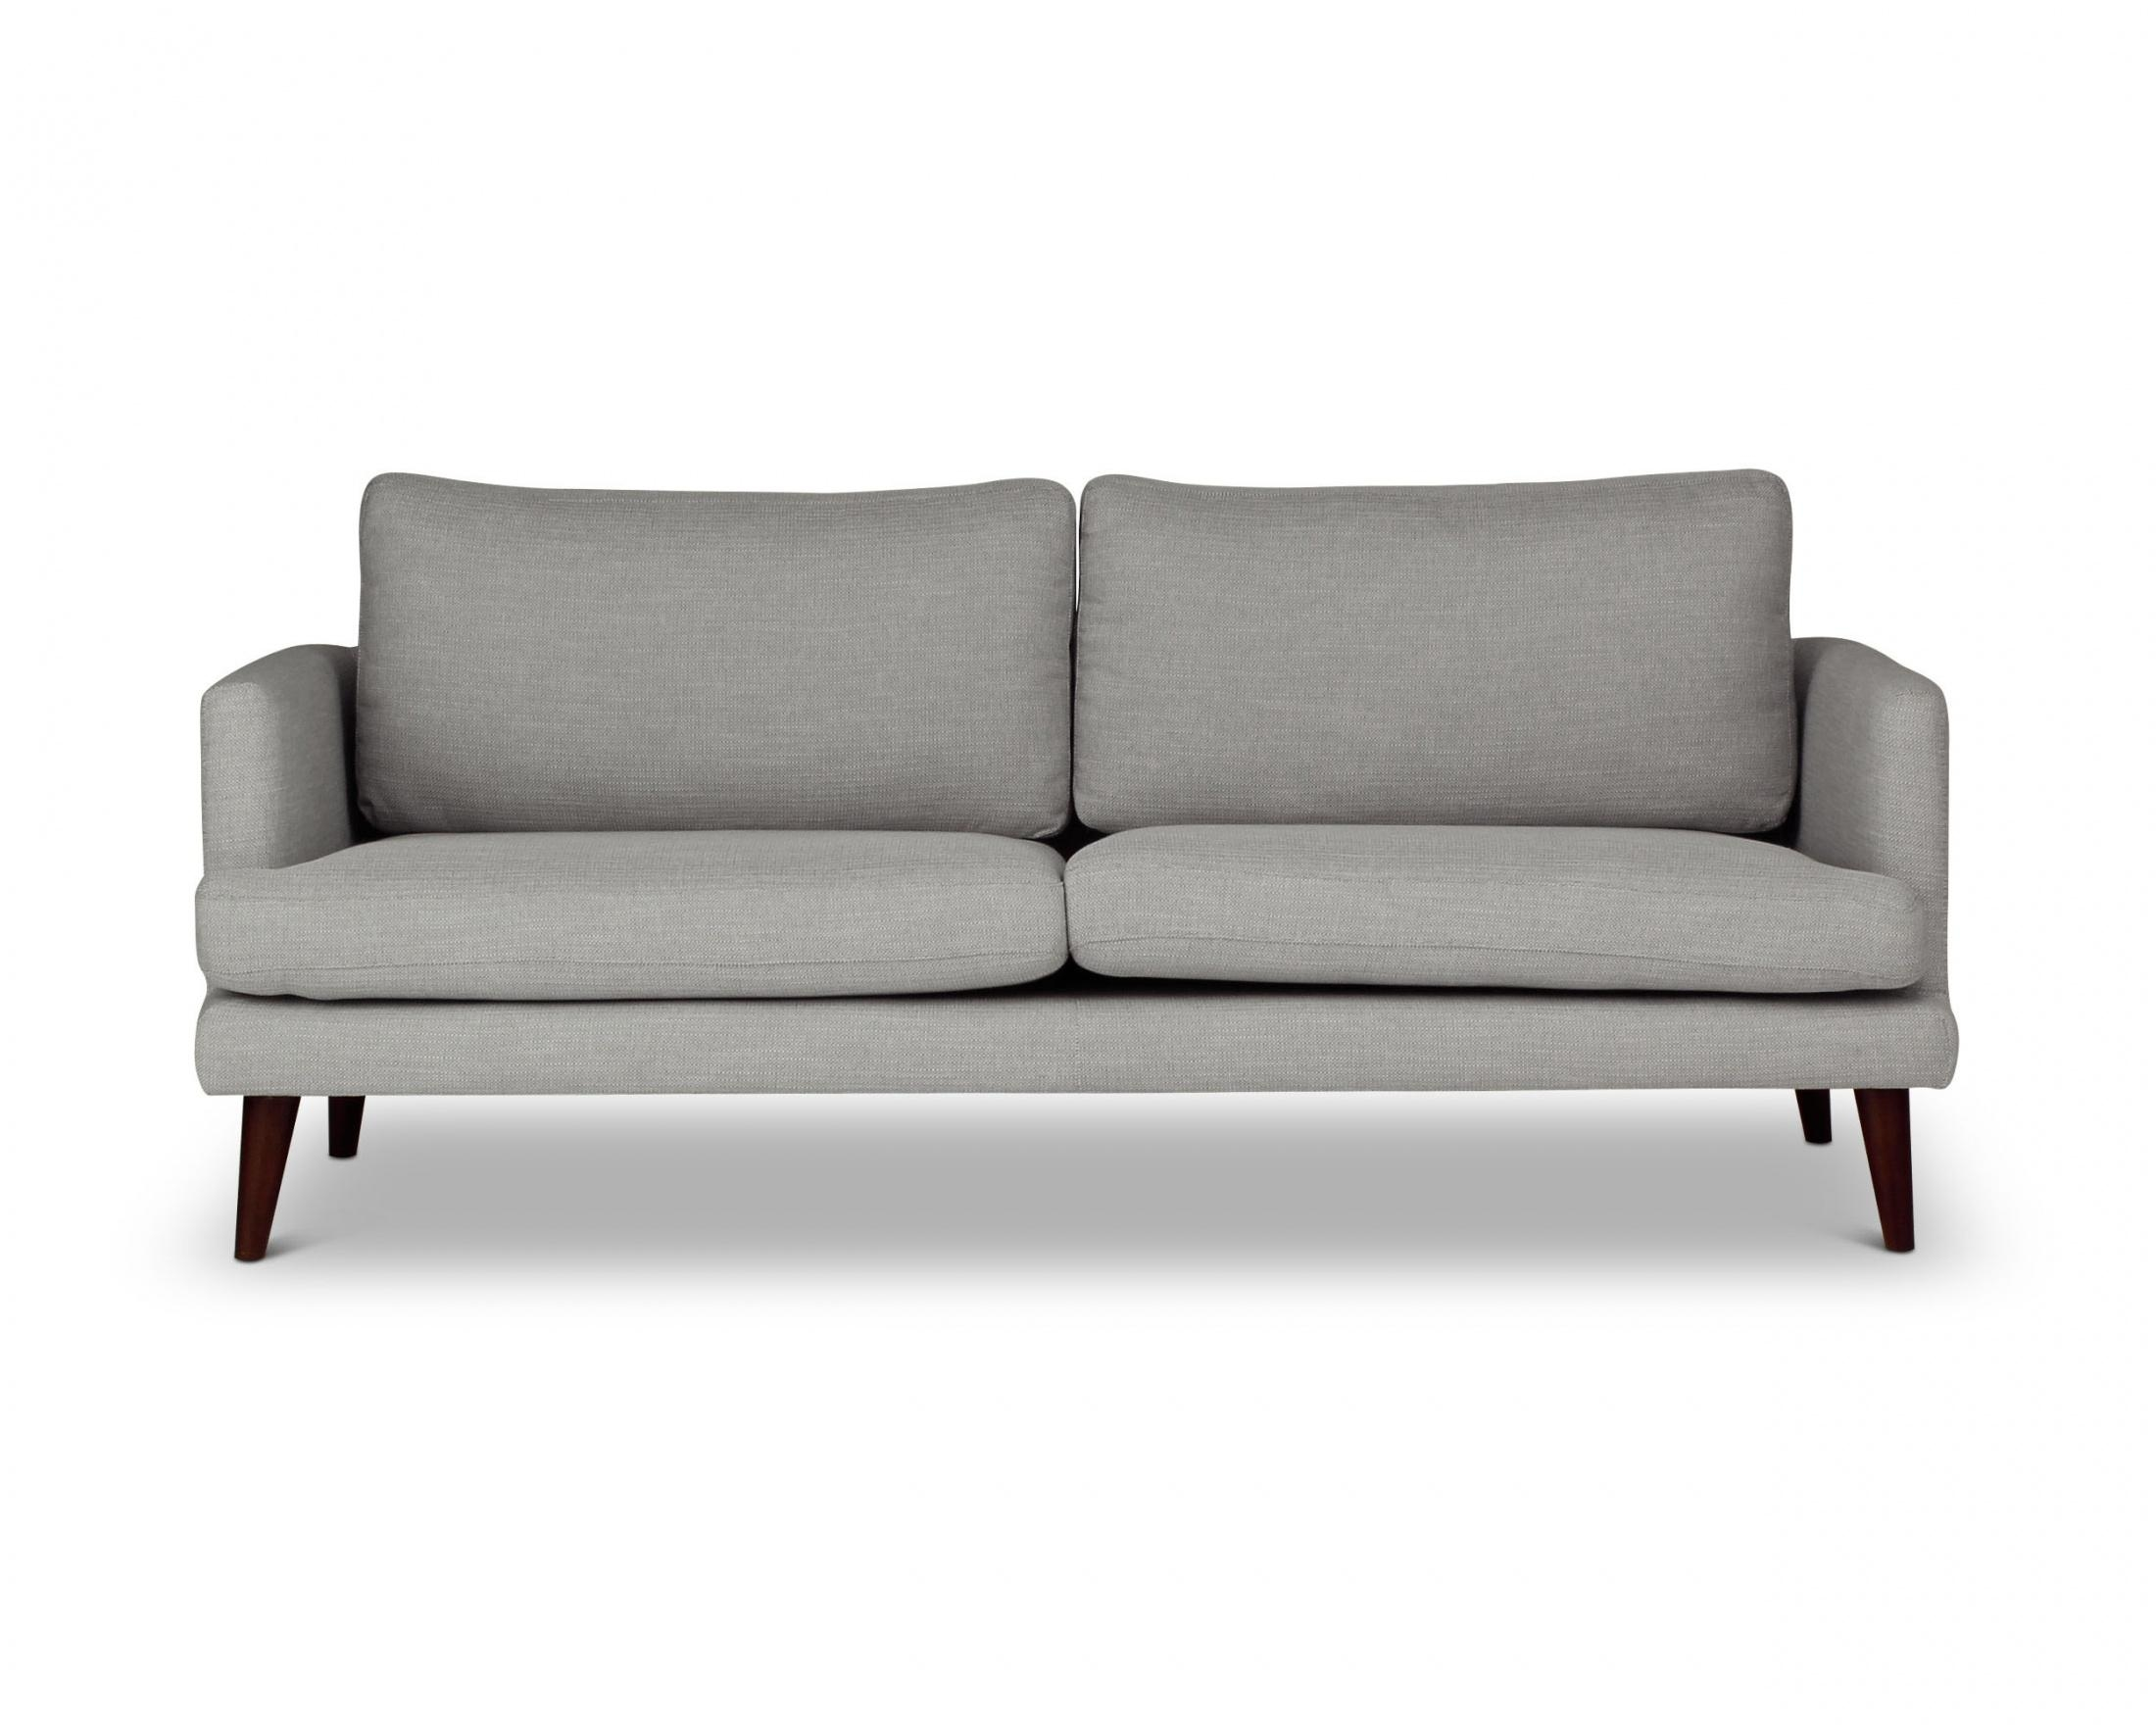 3 Seater Sofa 30 With 3 Seater Sofa | Jinanhongyu intended for 3 Seater Sofas for Sale